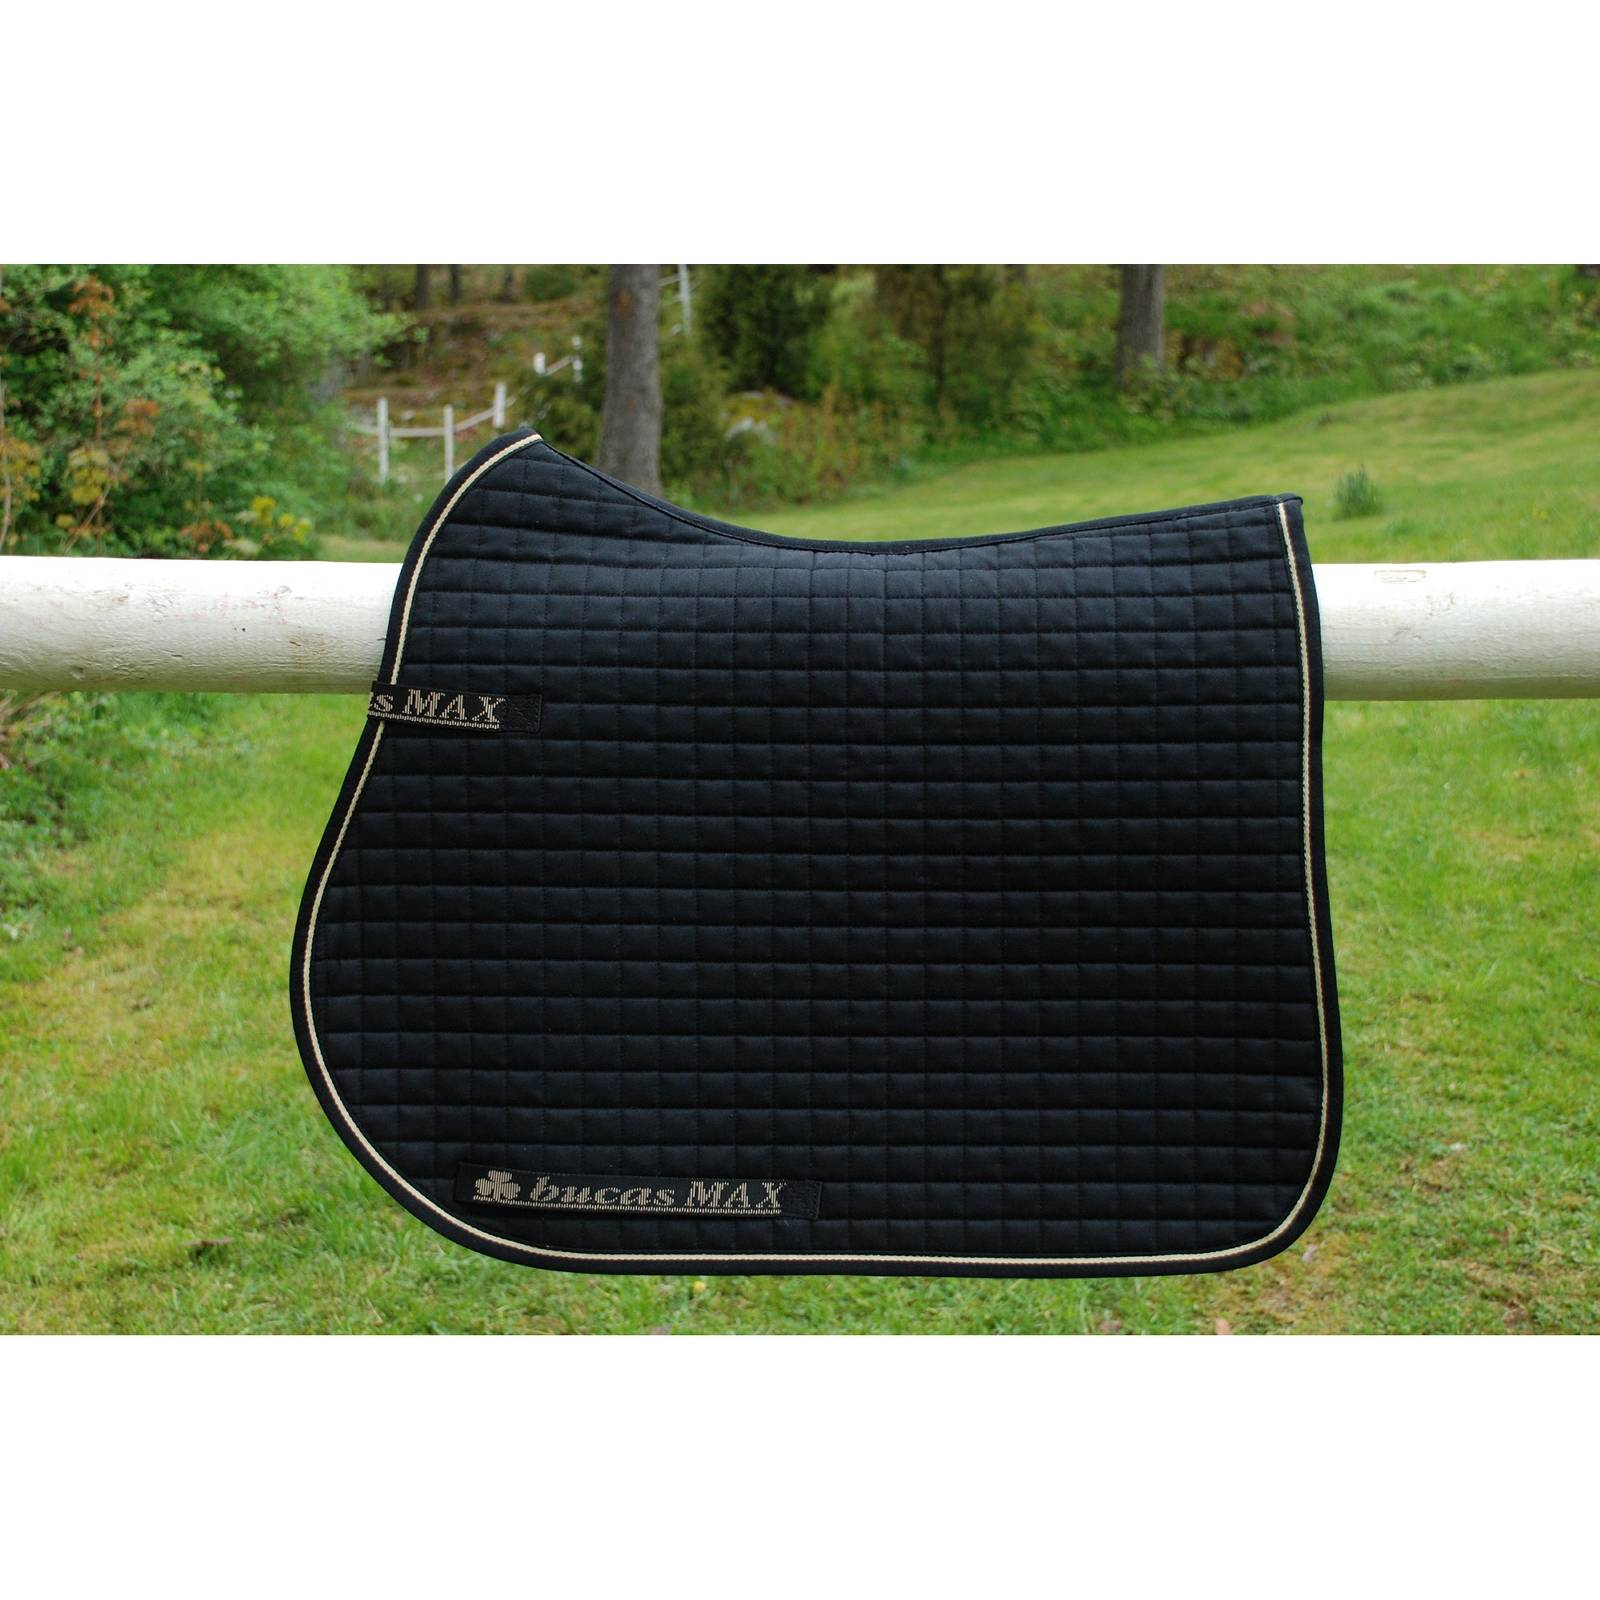 Bucas Max General Purpose Saddle Pad